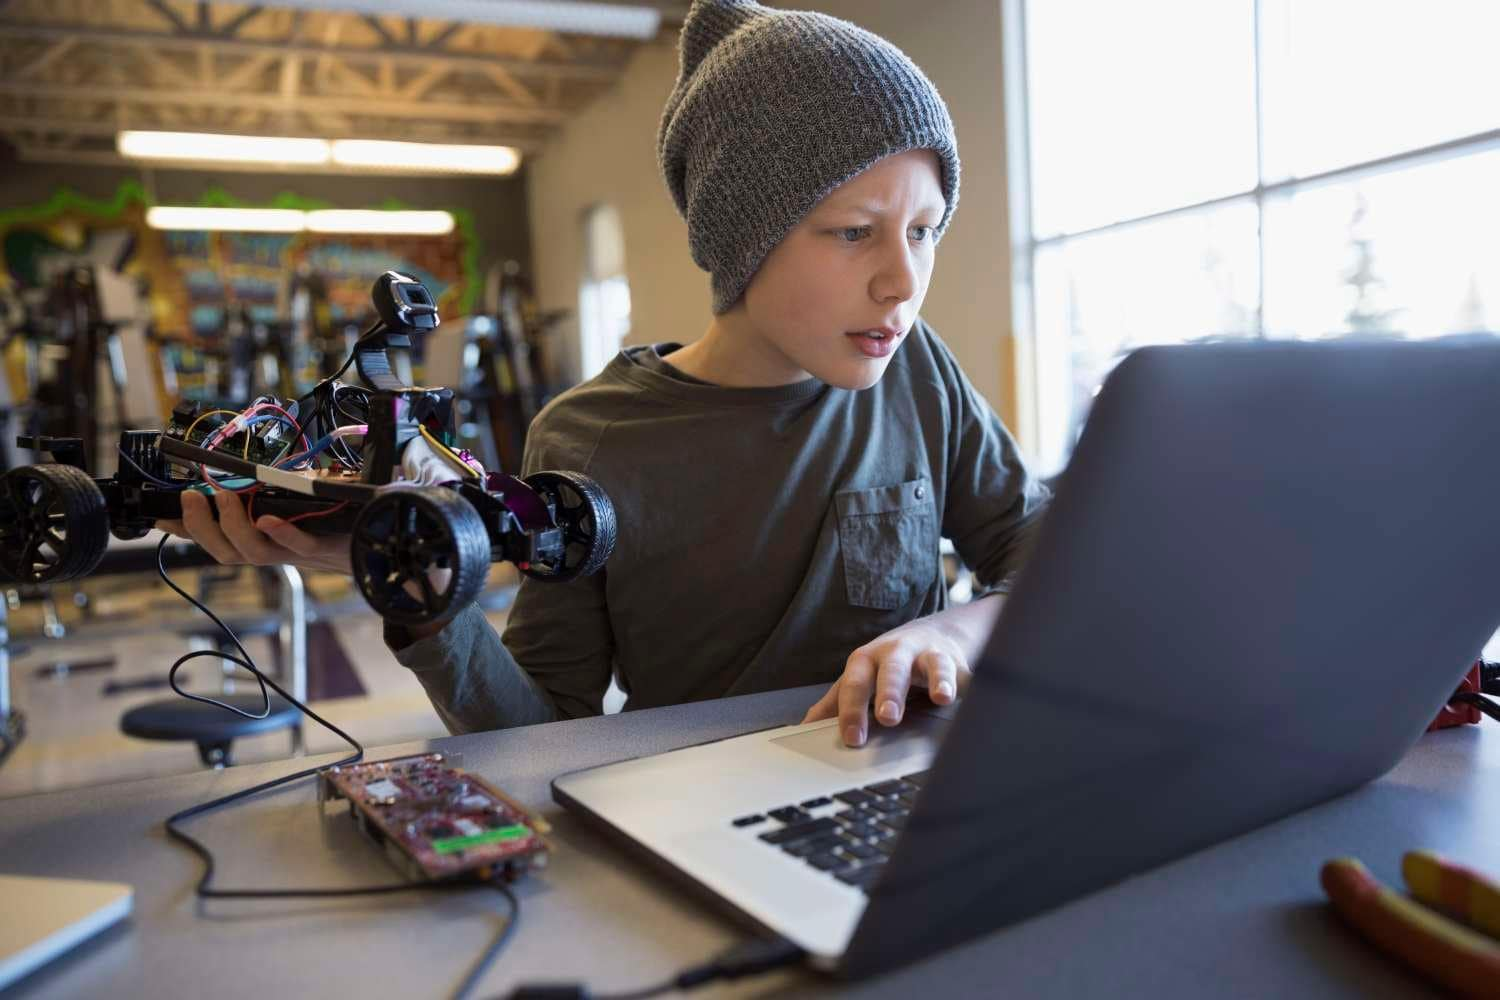 Young male student uses laptop to program remote control car